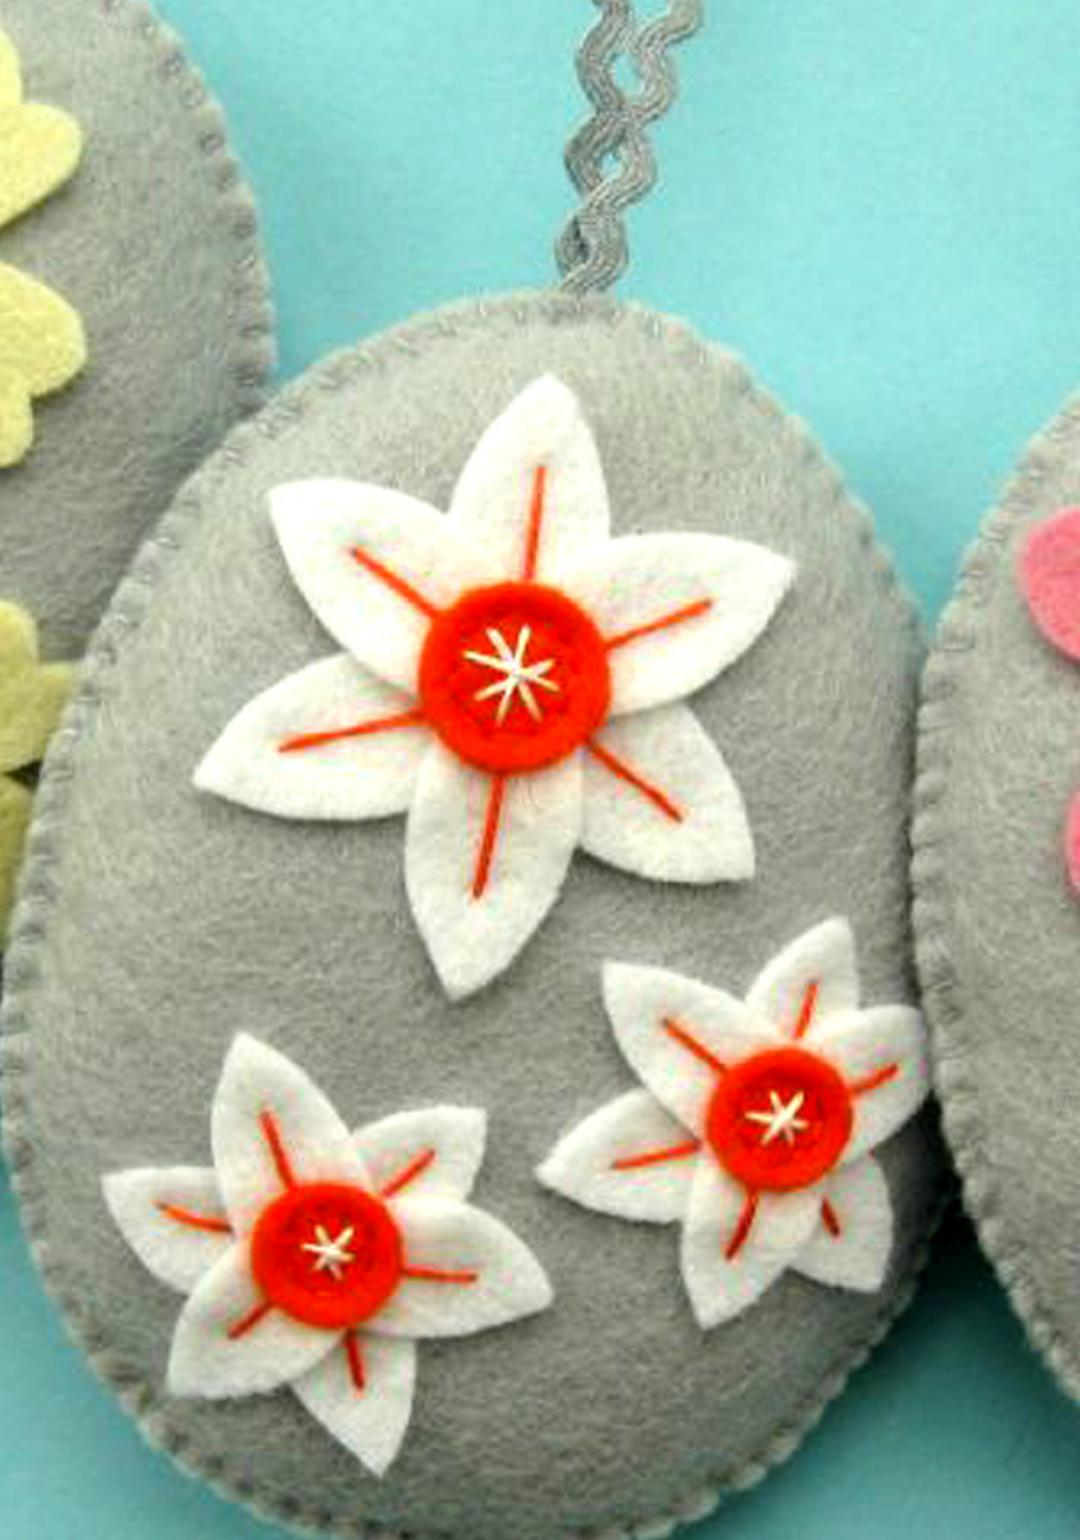 Activity: Make Easter Felt Eggs